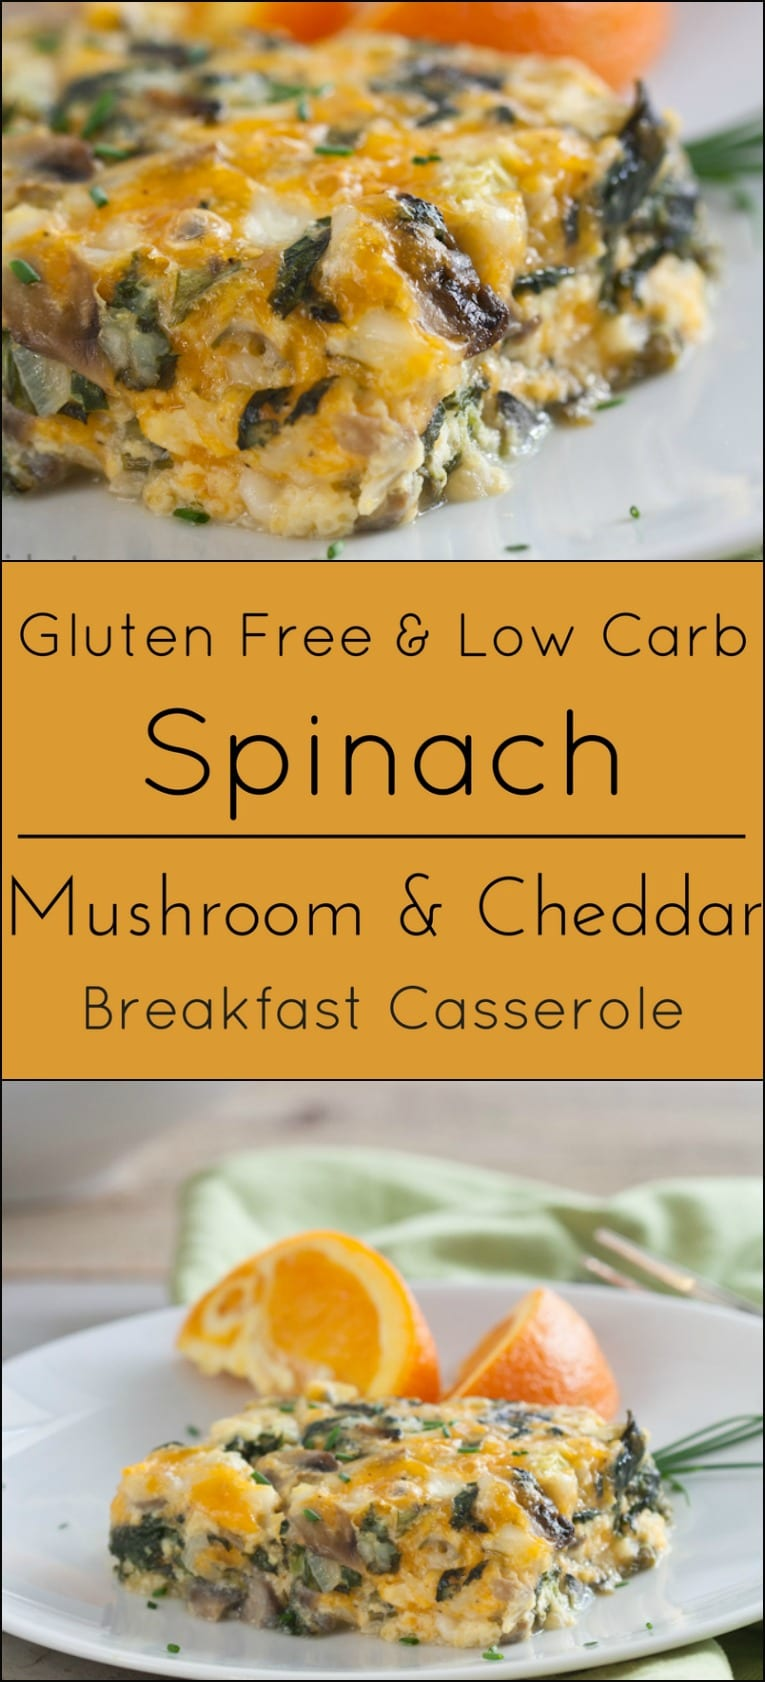 Gluten free, vegetarian and low carb, Spinach, Mushroom and Cheese Breakfast Casserole. Perfect for brunch or breakfast.